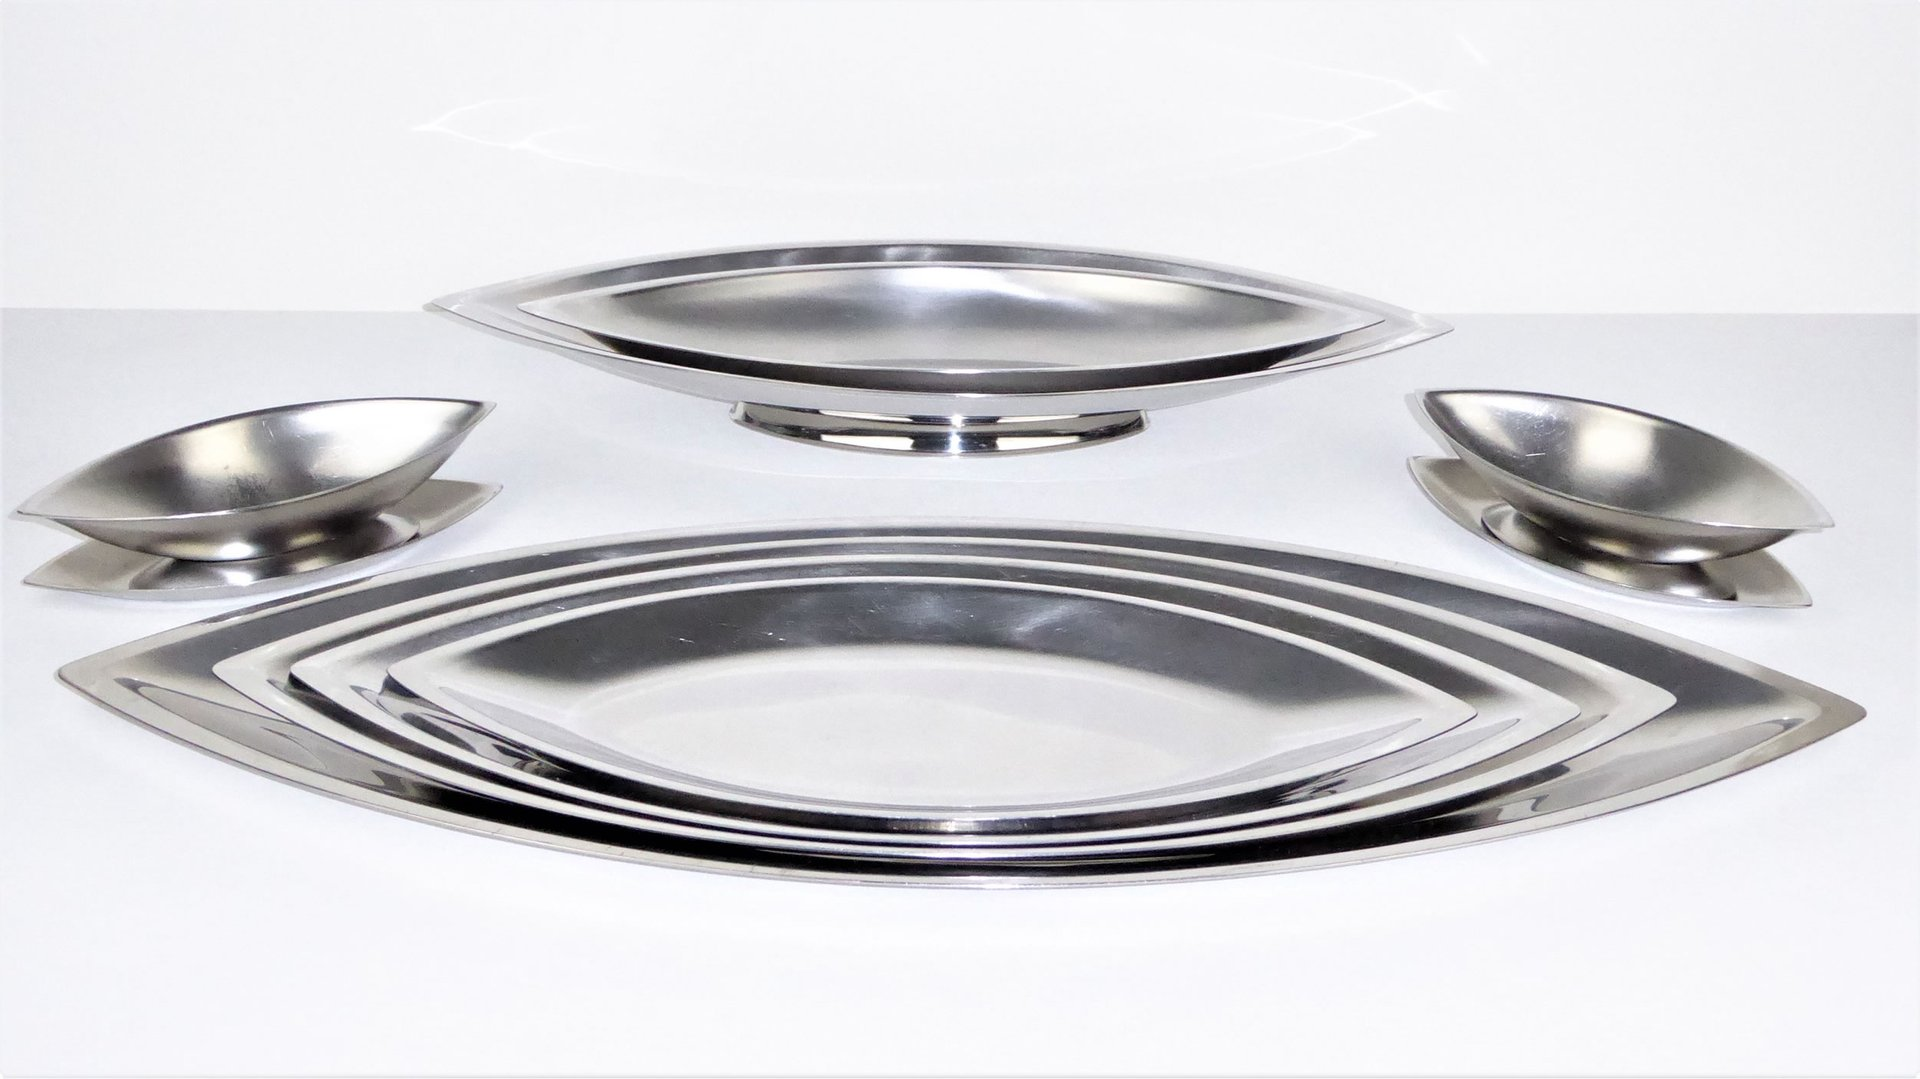 Cosmos Stainless Steel Dishes by Guy Degrenne 1970s Set of 10  sc 1 st  Pamono & Cosmos Stainless Steel Dishes by Guy Degrenne 1970s Set of 10 for ...